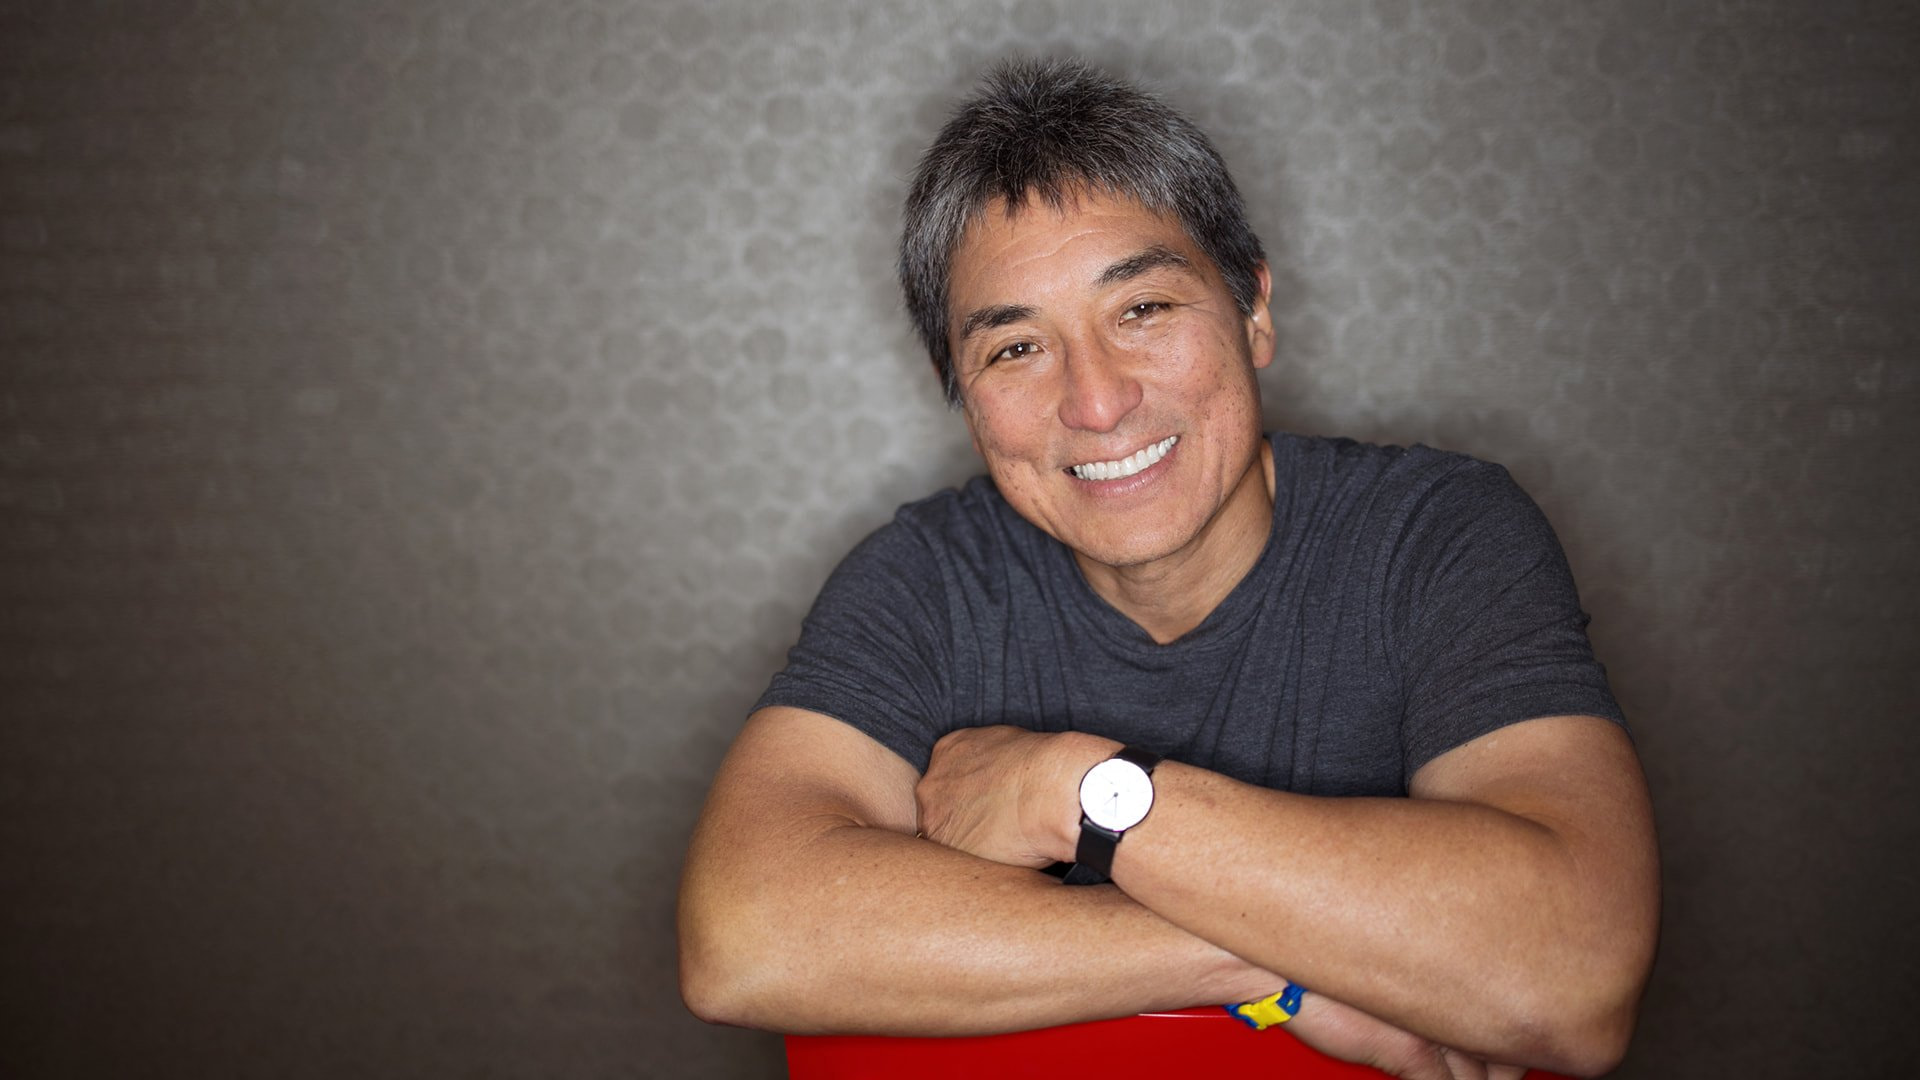 Canva welcomes Guy Kawasaki as Chief Evangelist featured image